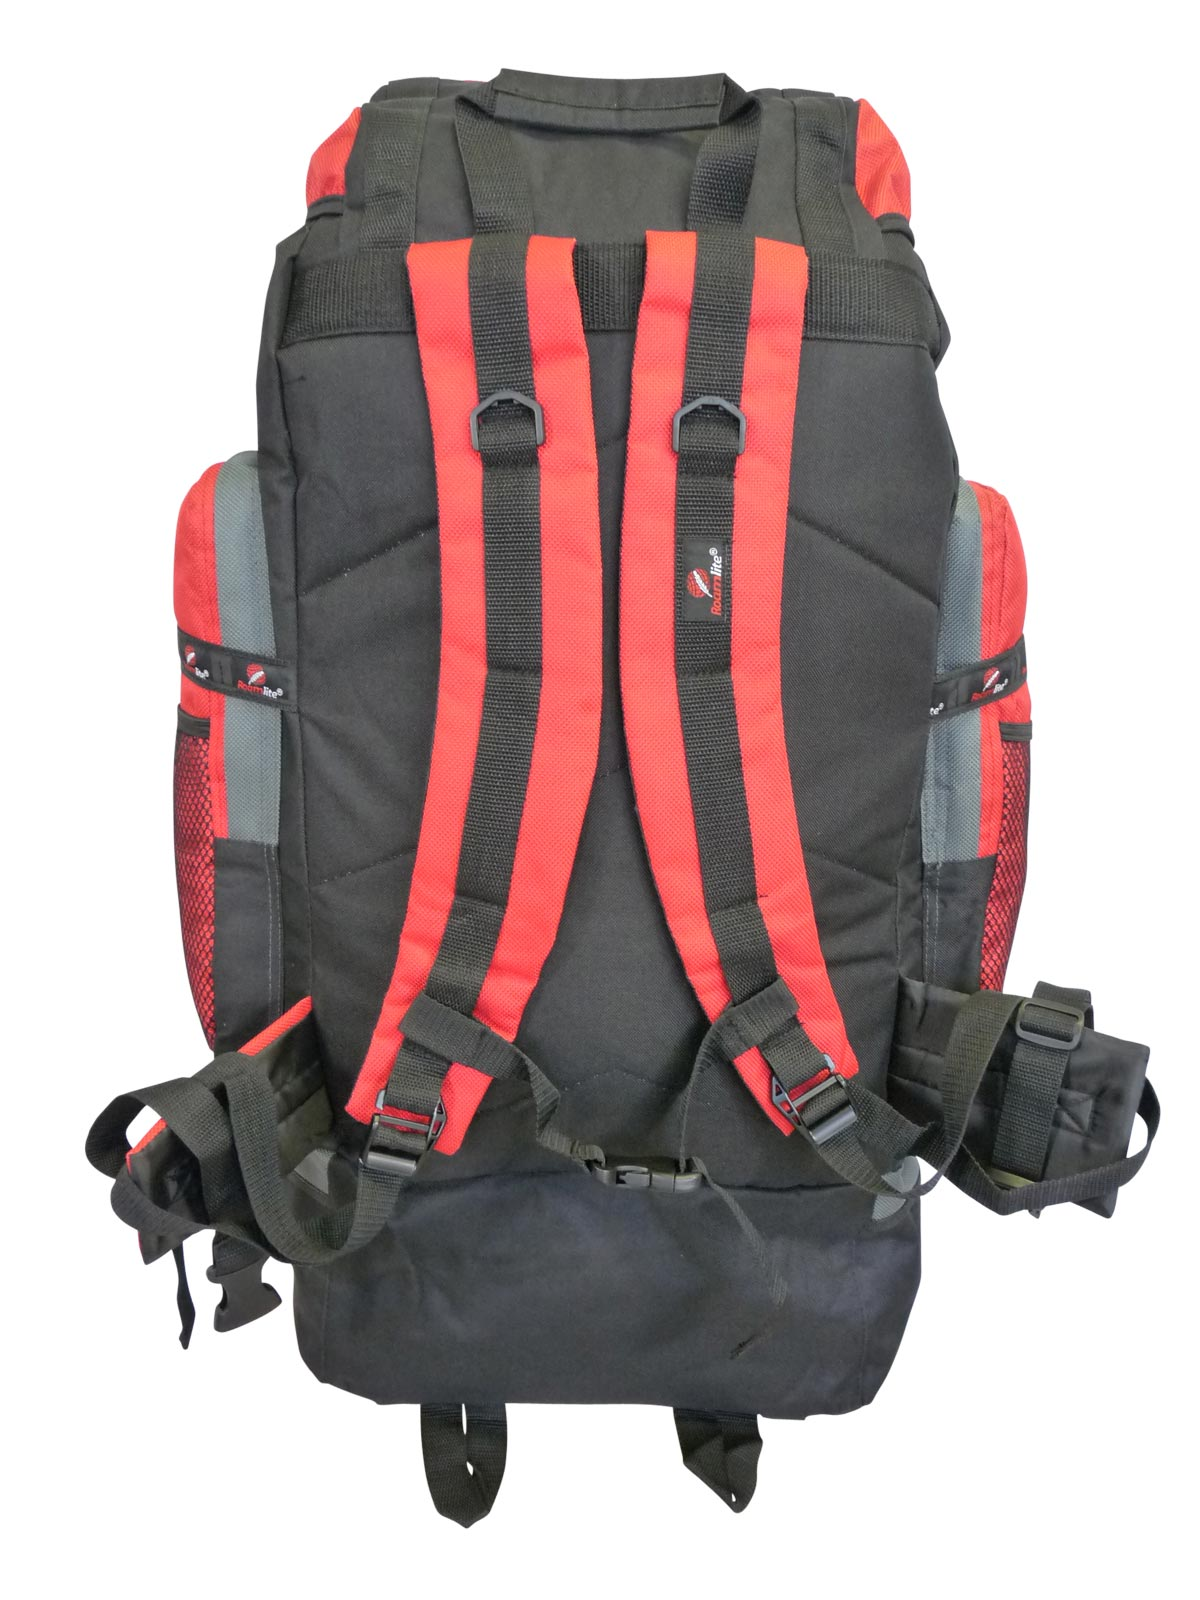 Festival Camping Backpack Bag RL02KRb